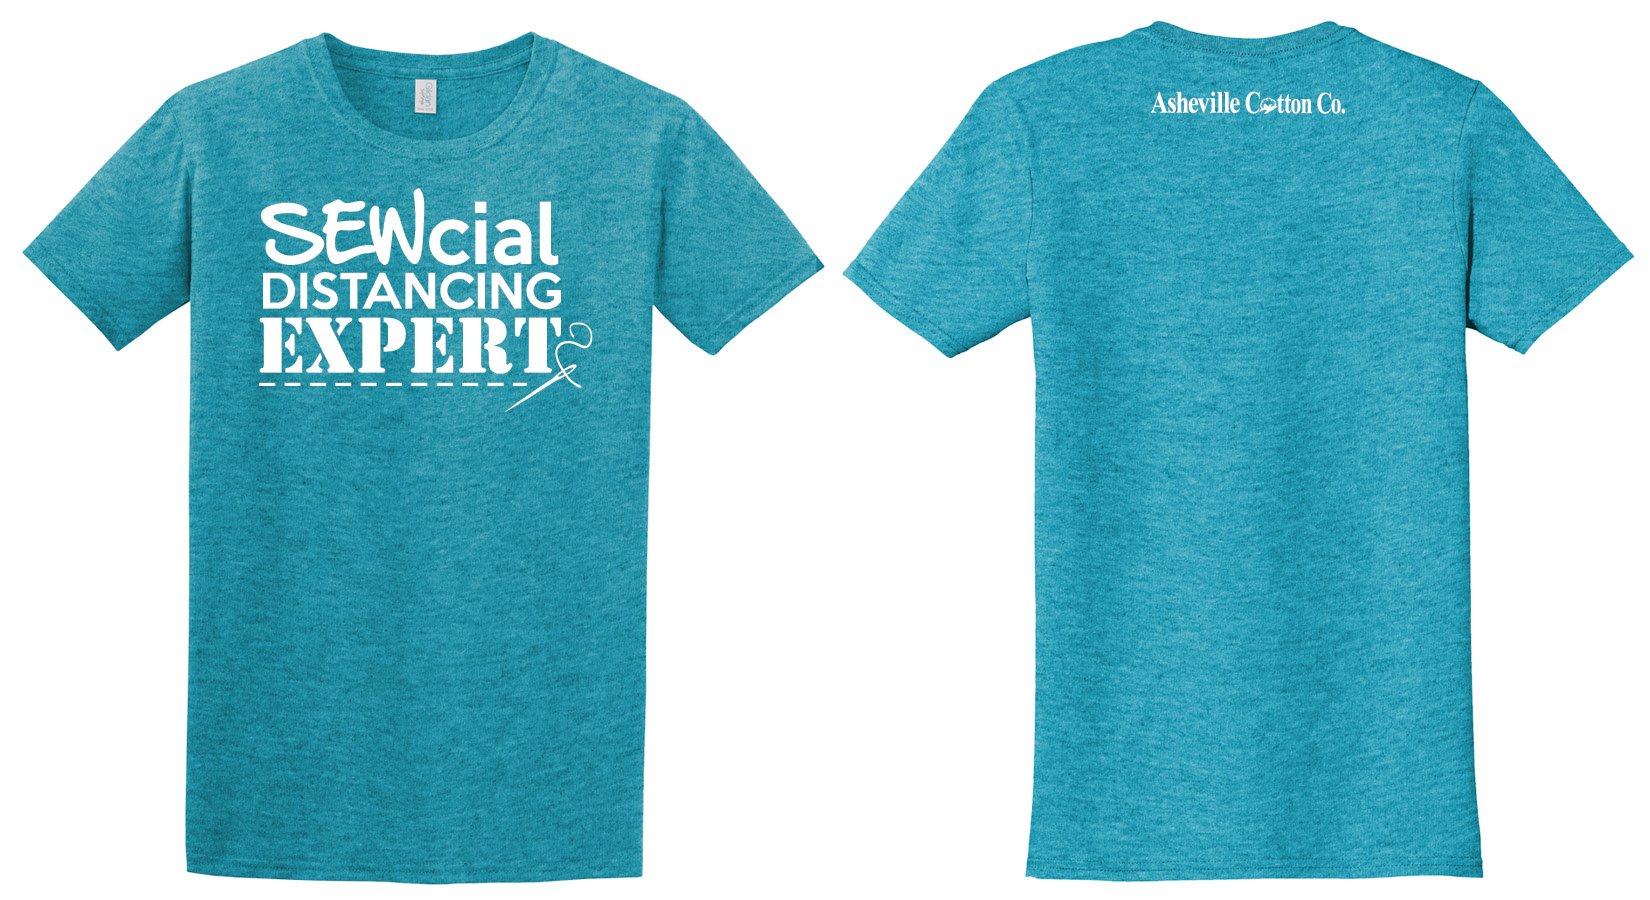 Sewcial Distancing T-Shirt Only (No fabric)